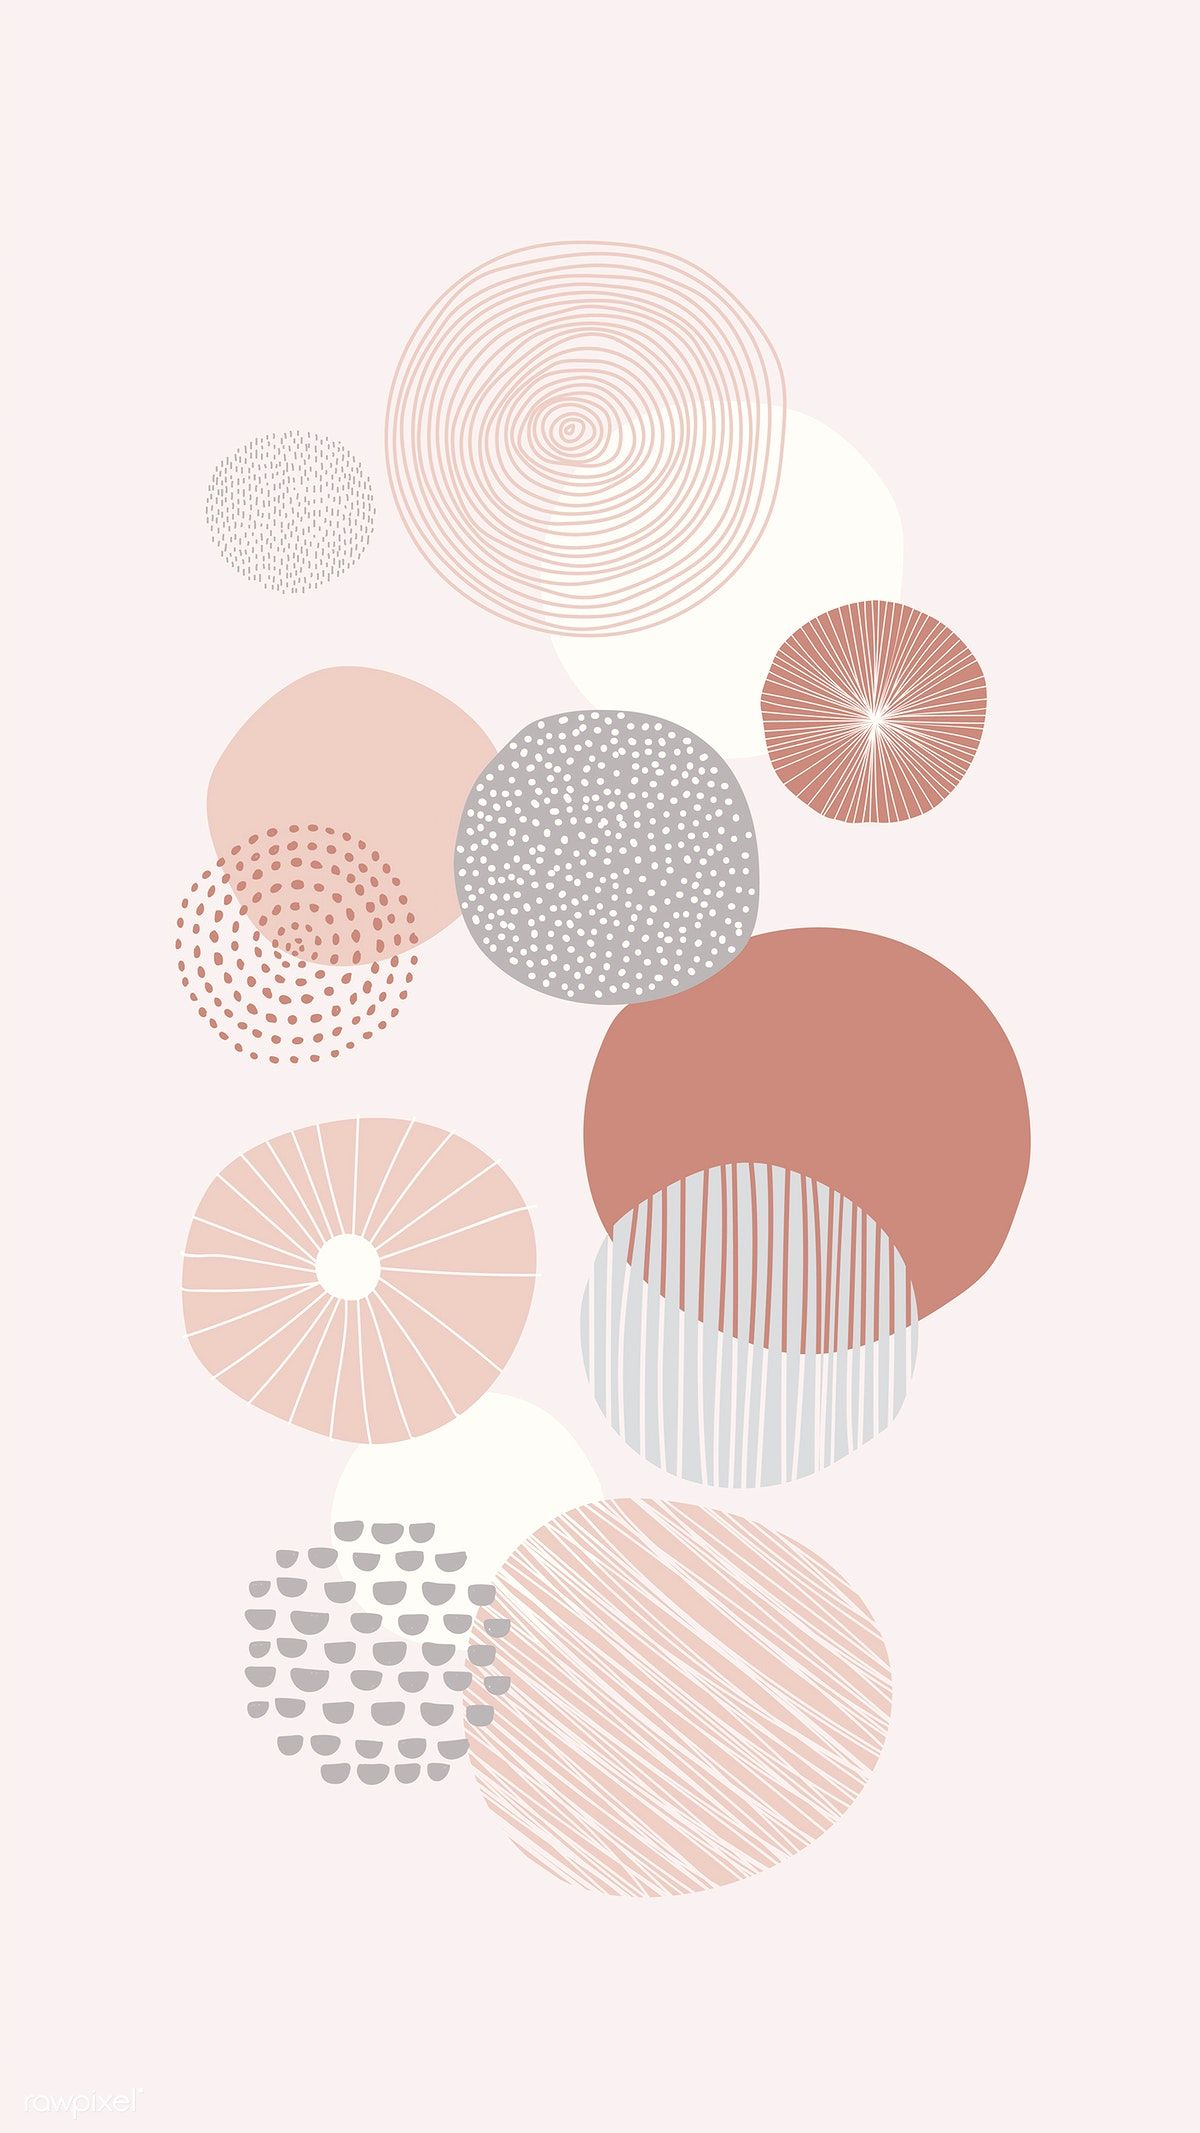 Download premium vector of Round patterned doodle background vector 844895